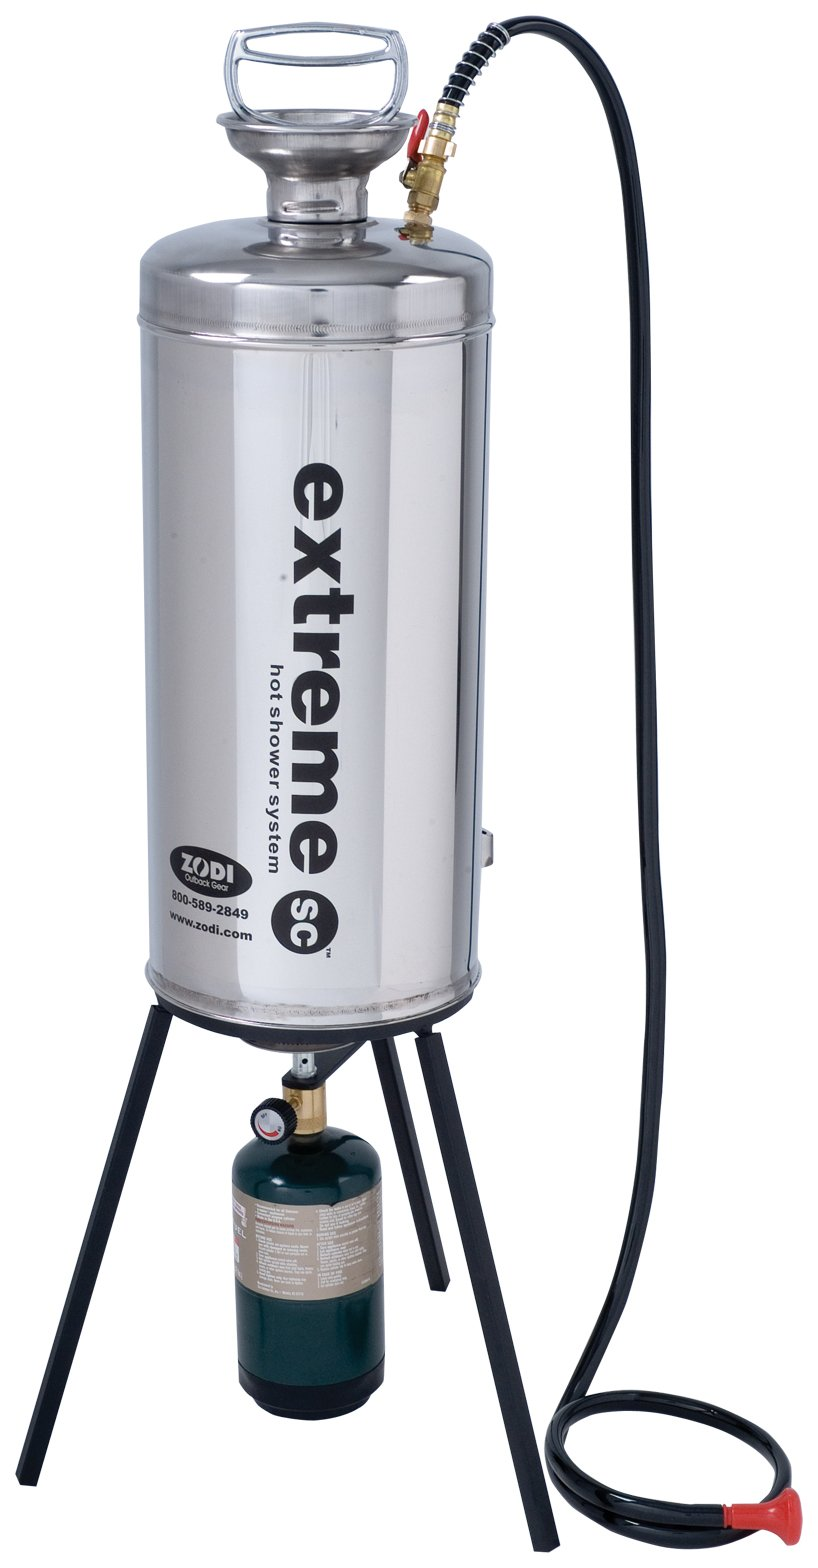 Zodi Extreme SC Portable Shower with Tripod Stove by Zodi (Image #1)